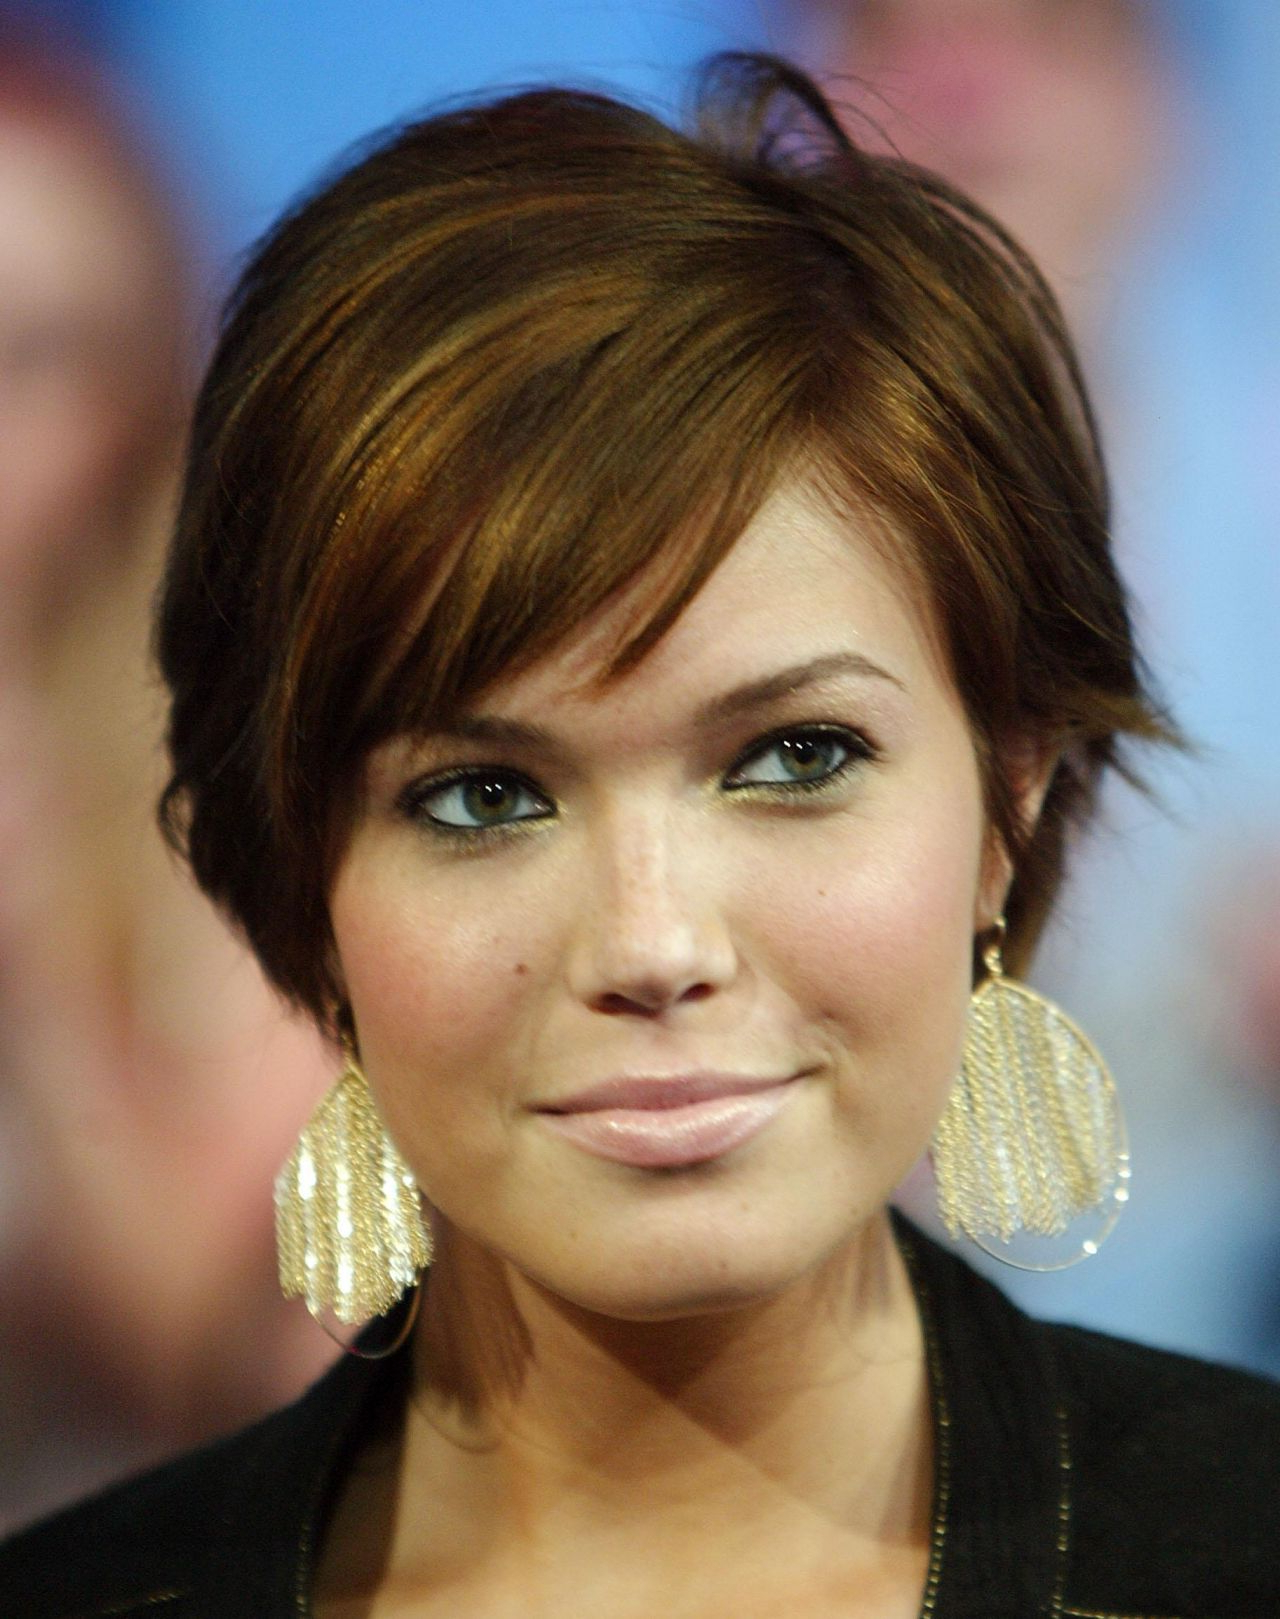 Short Female Hairstyles For Round Faces 2018 | Beauty | Pinterest For Edgy Short Hairstyles For Round Faces (View 5 of 25)